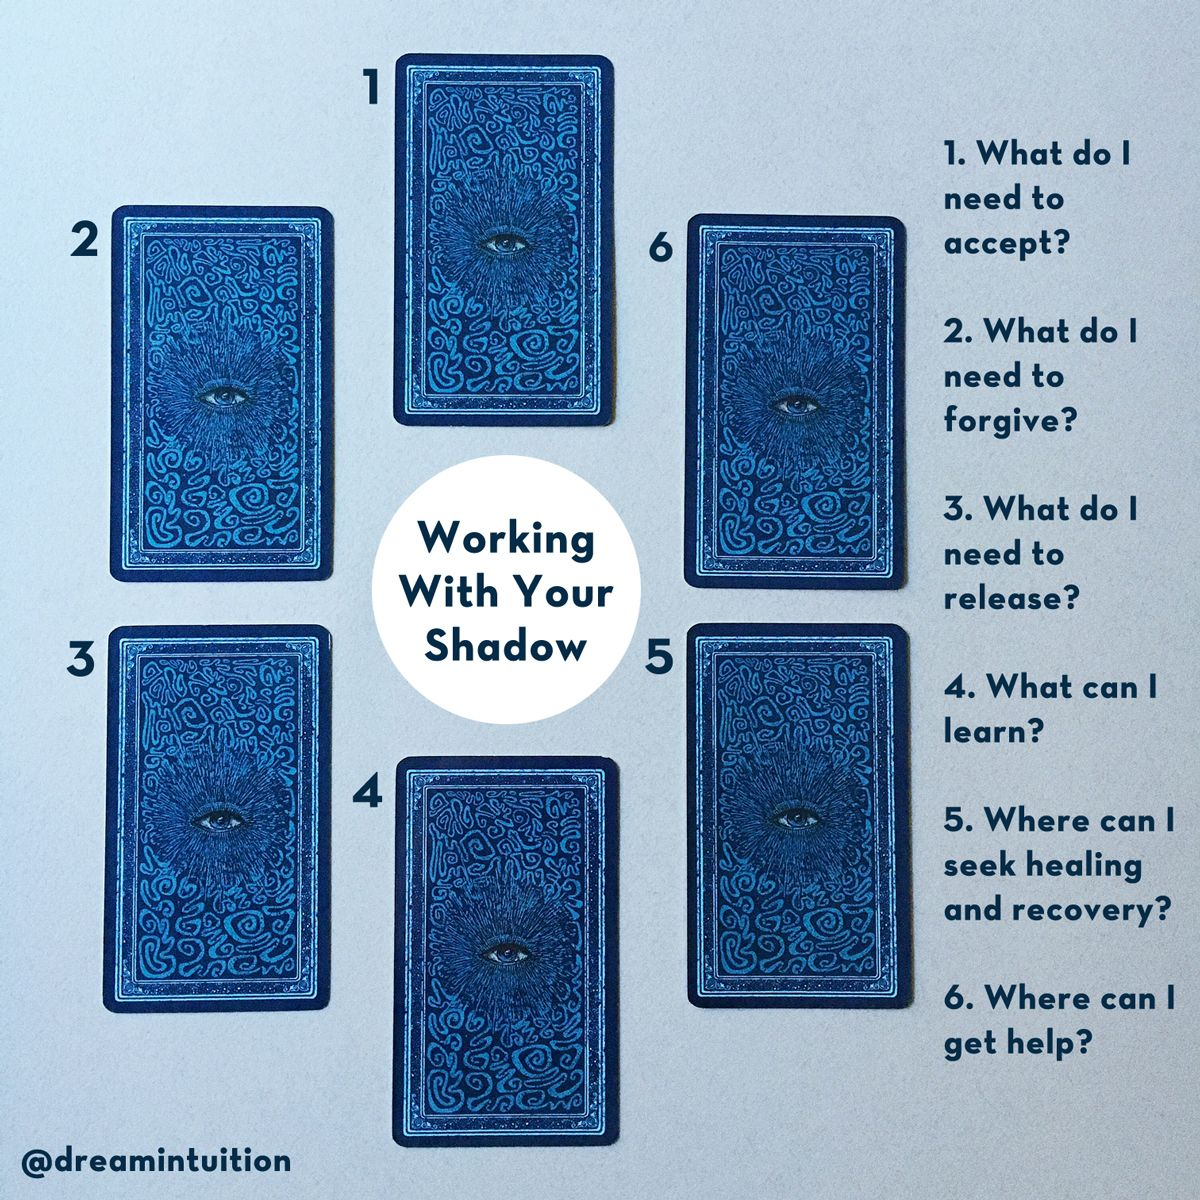 Working With Your Shadow A Tarot Spread Designed To Uncover What